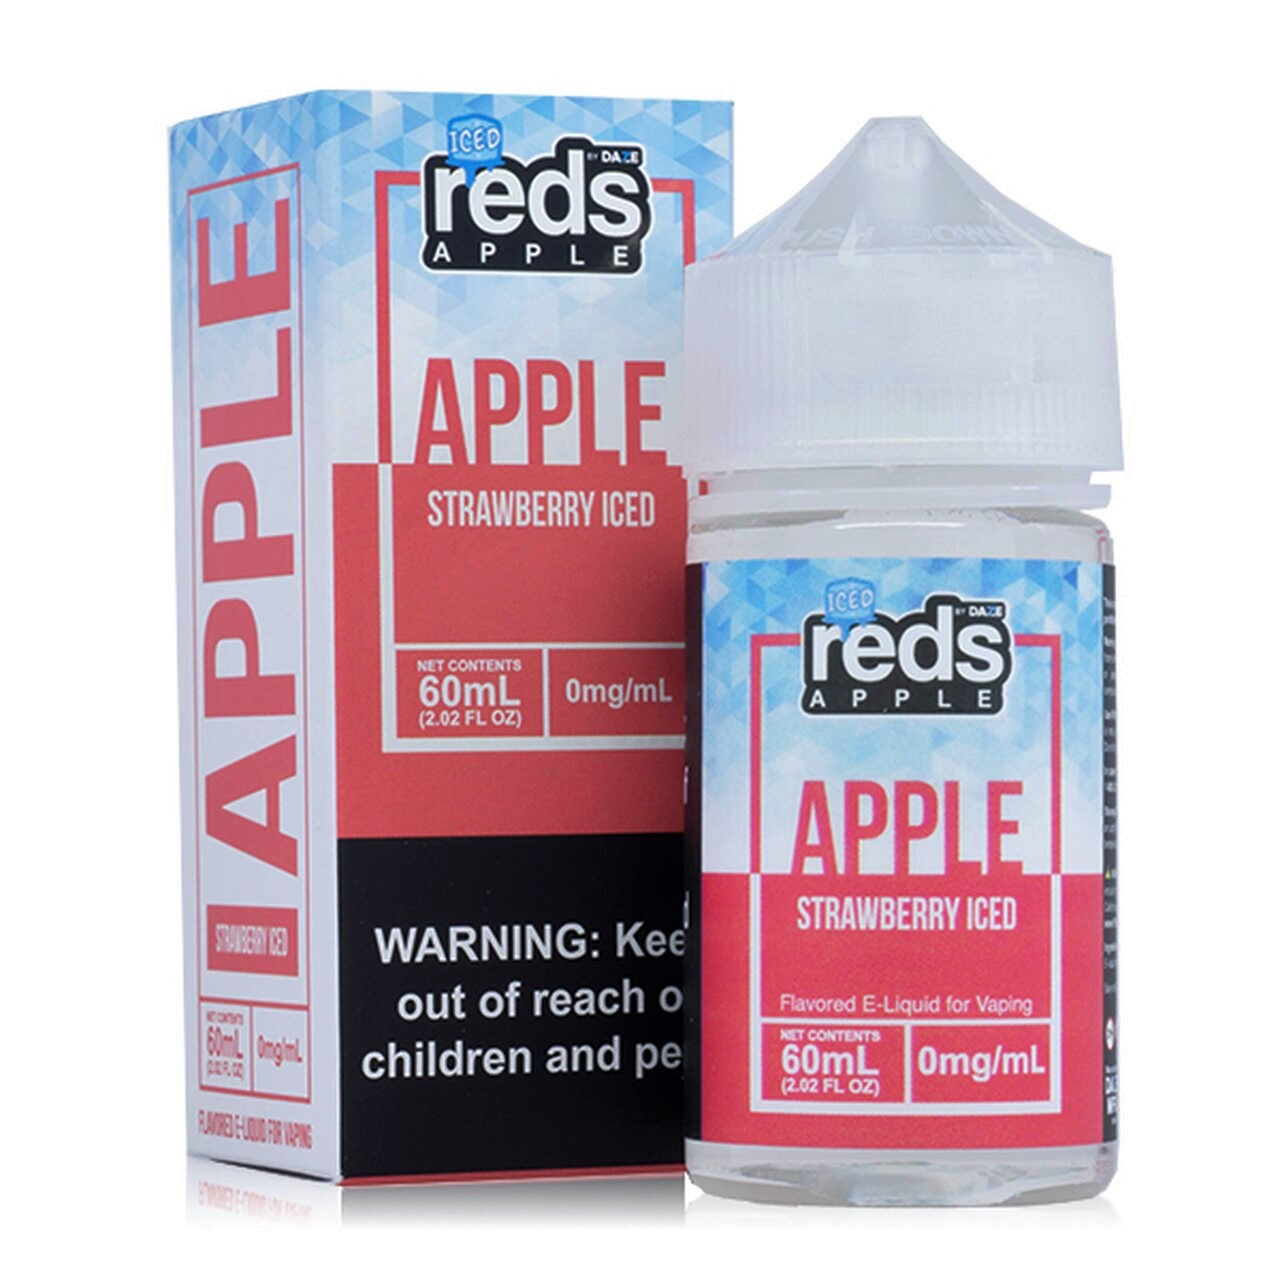 strawberry iced by reds apple